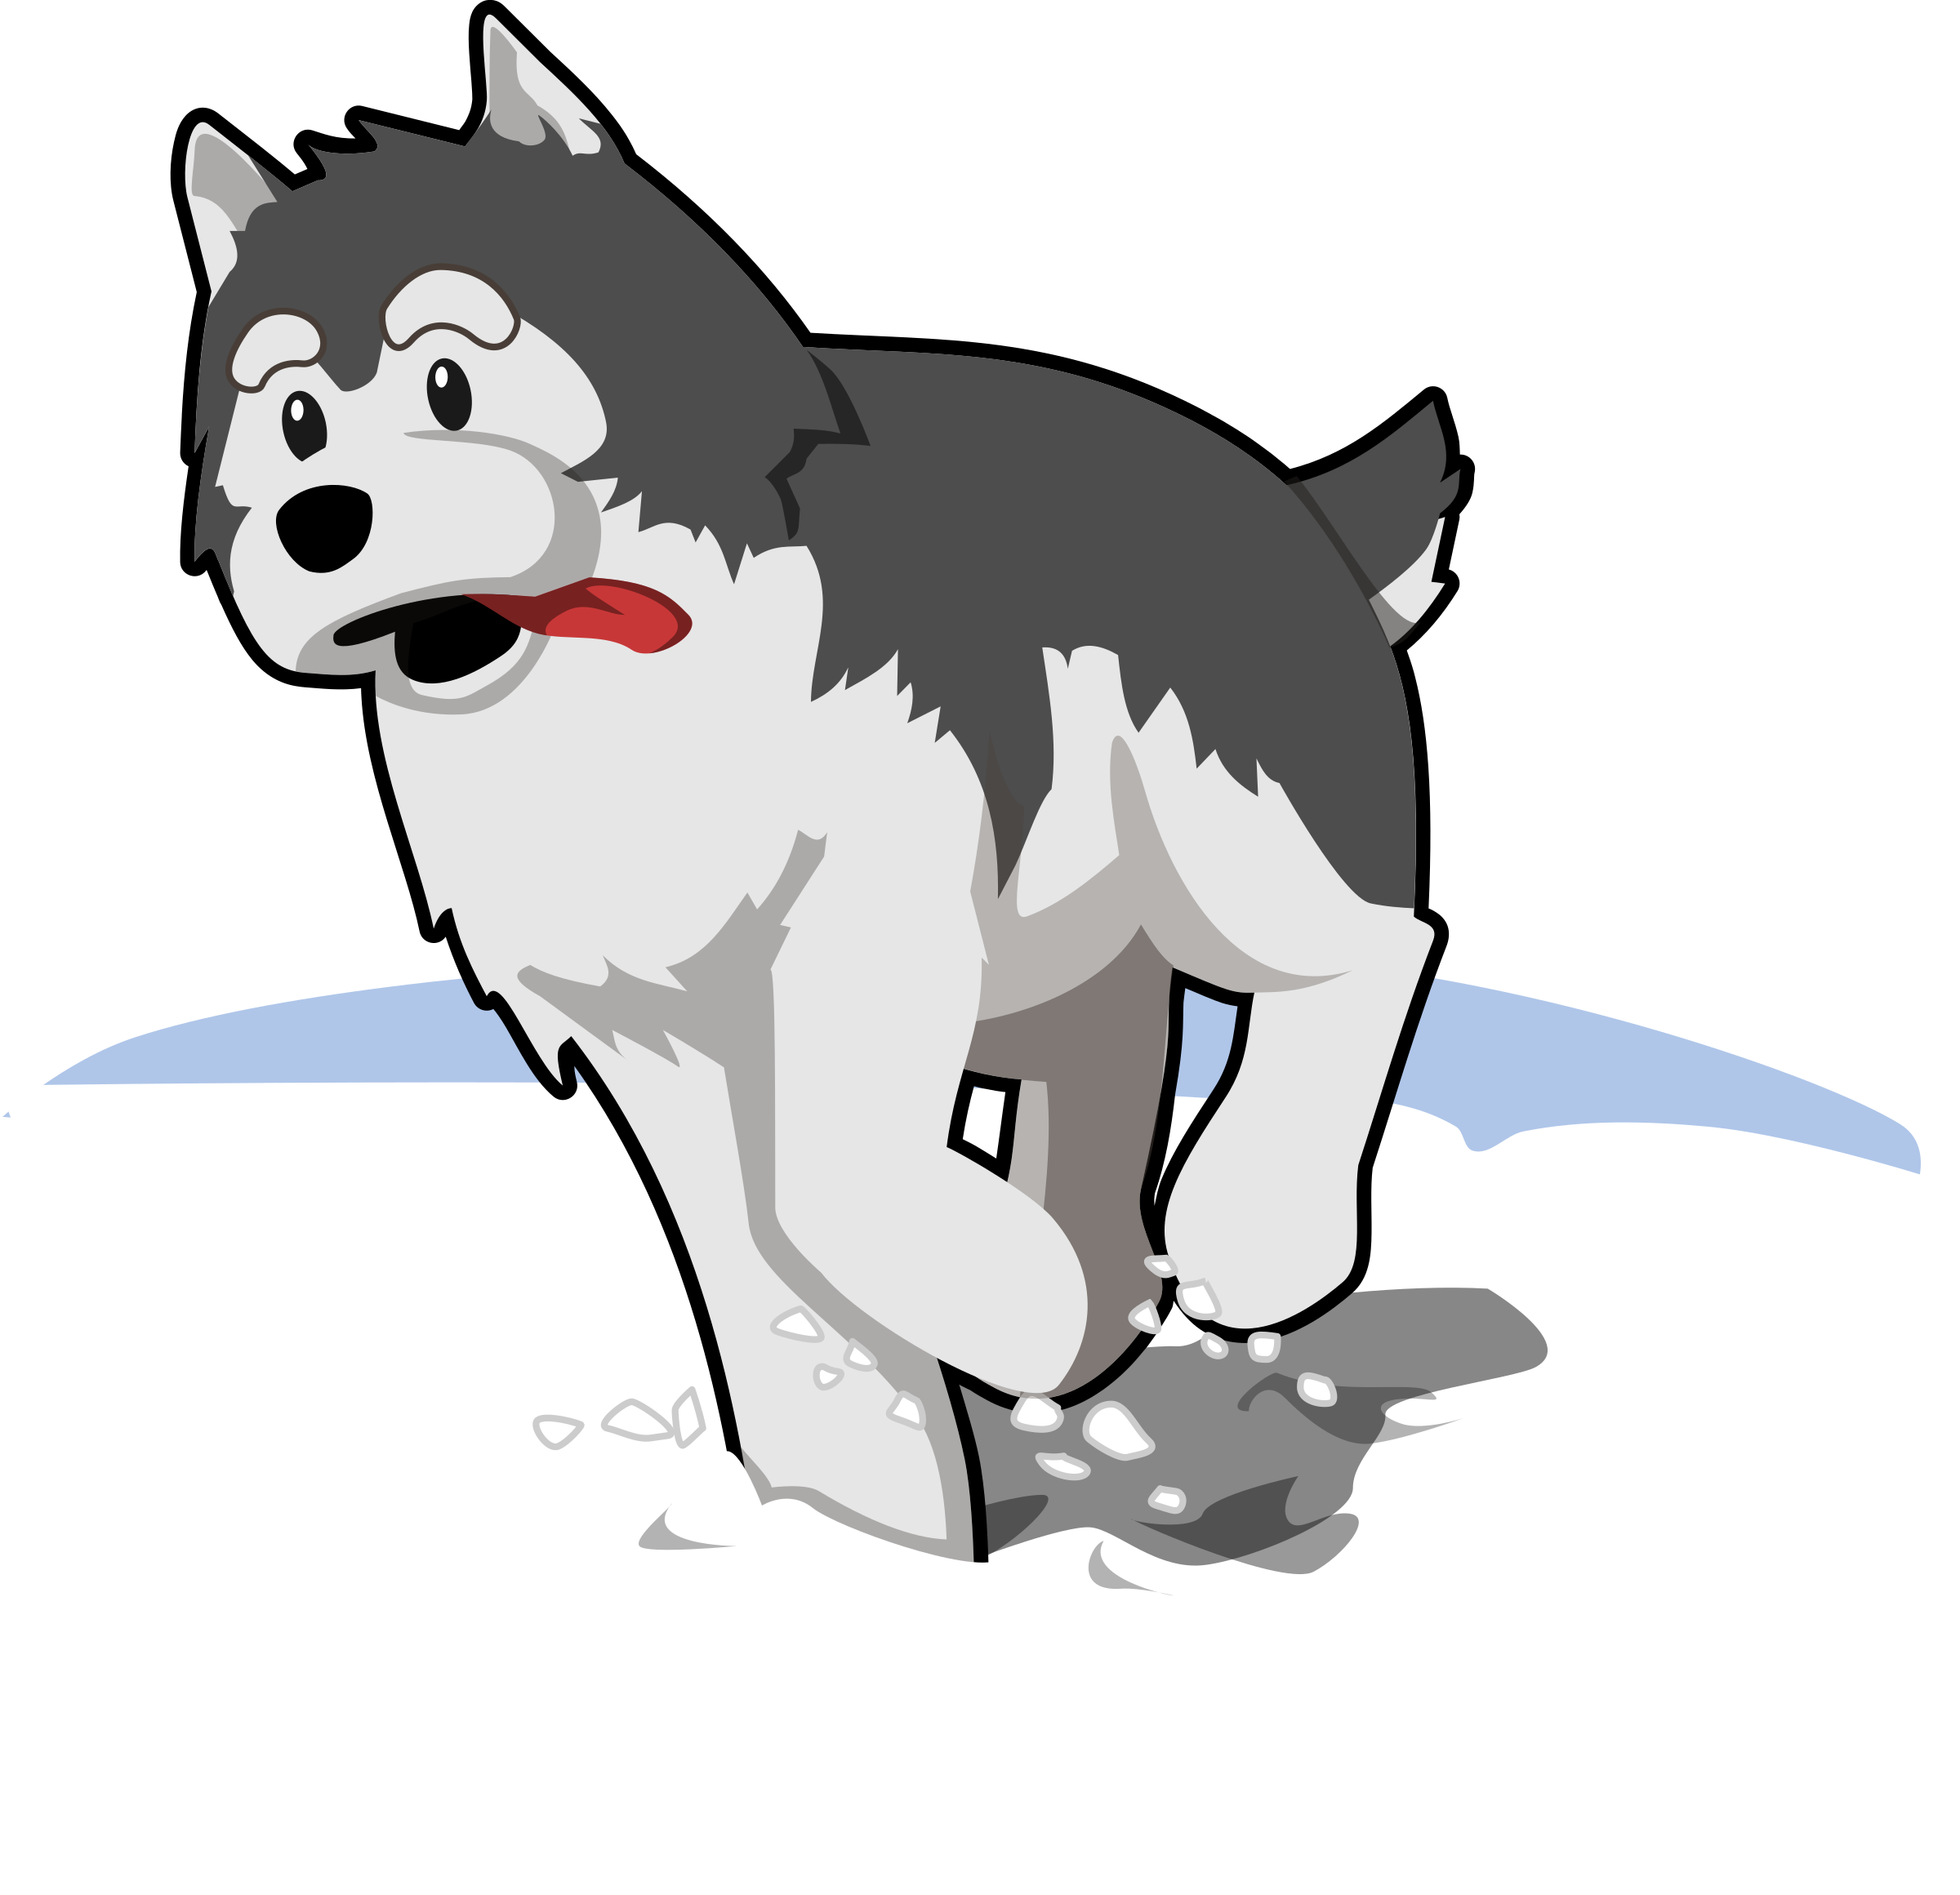 Running in snow big. Husky clipart real puppy